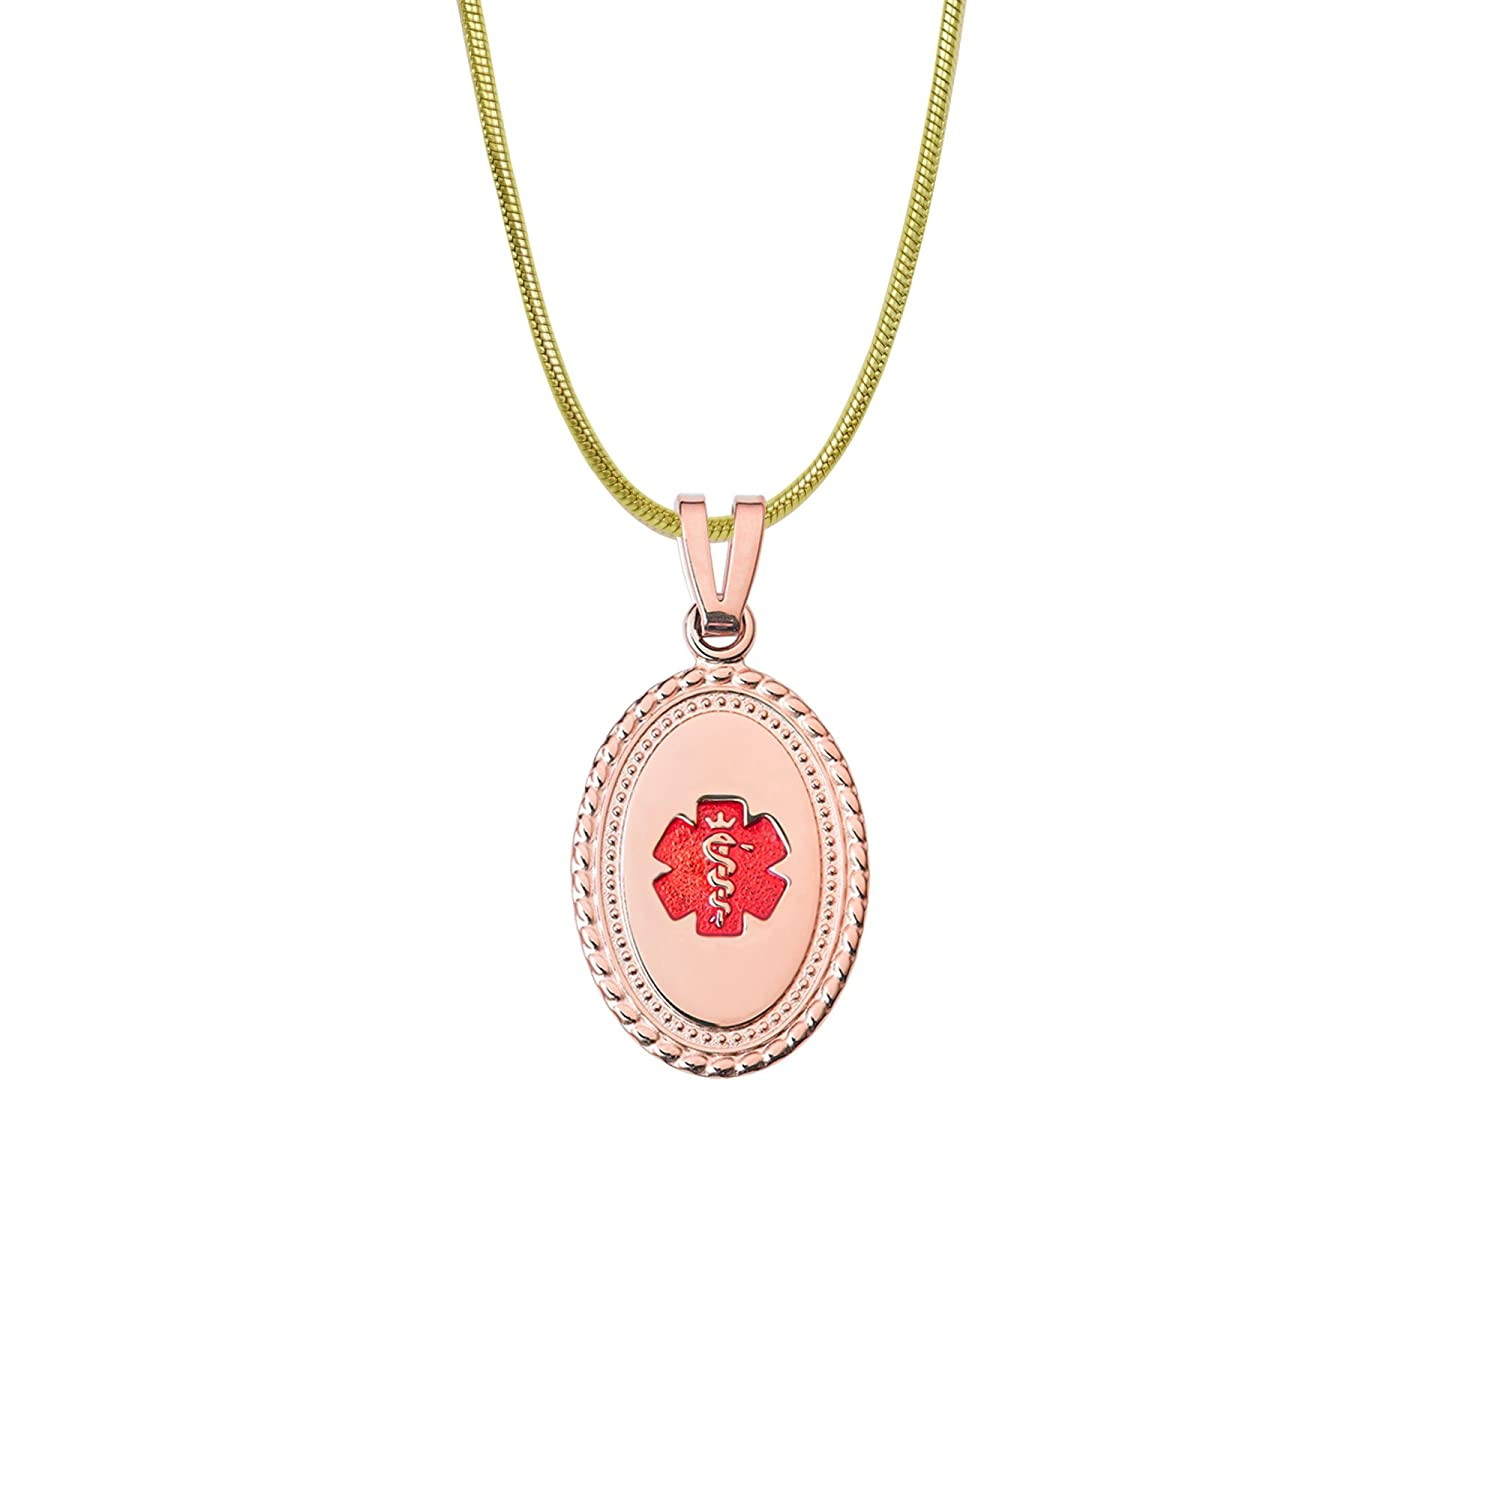 24 Stainless 2.0mm-PVD Gold Snake Chain-TP Red Divoti Deep Custom Laser Engraved PVD Rose Gold Disc 316L Medical Alert Necklace